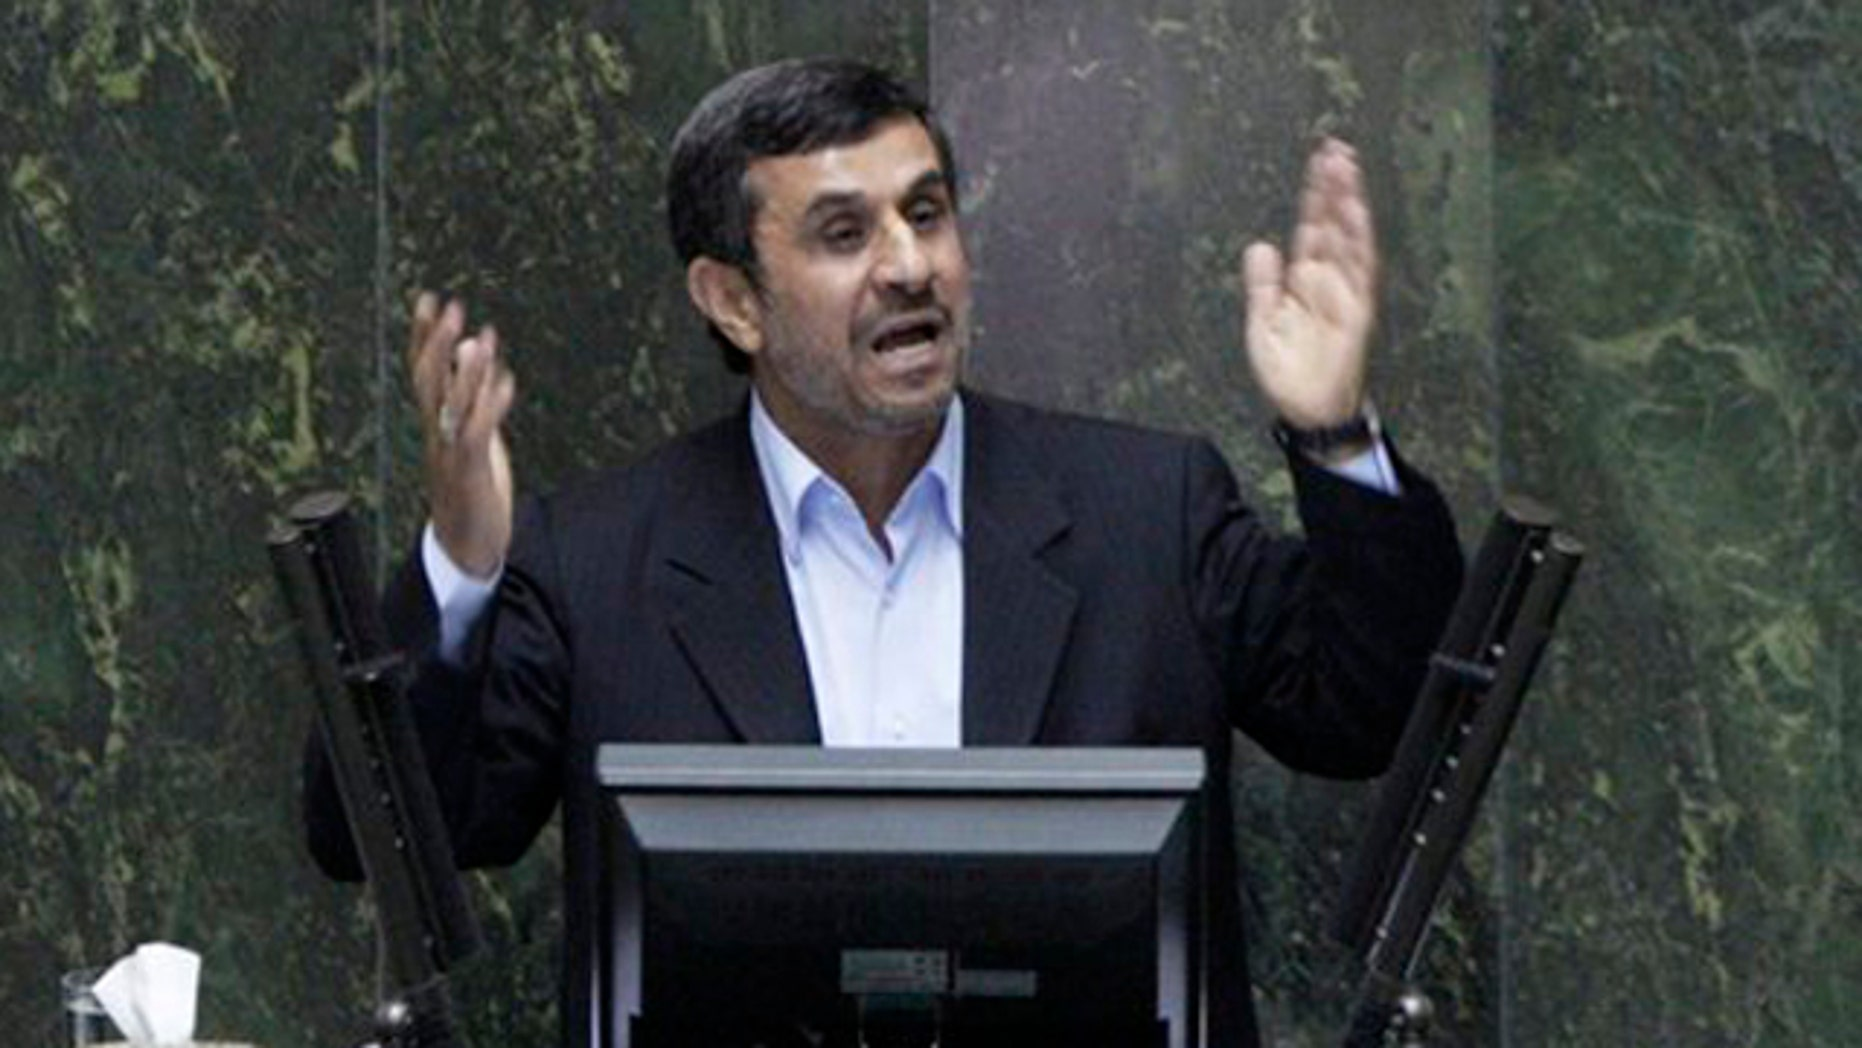 March 14, 2012: Iranian President Mahmoud Ahmadinejad speaks in Tehran.